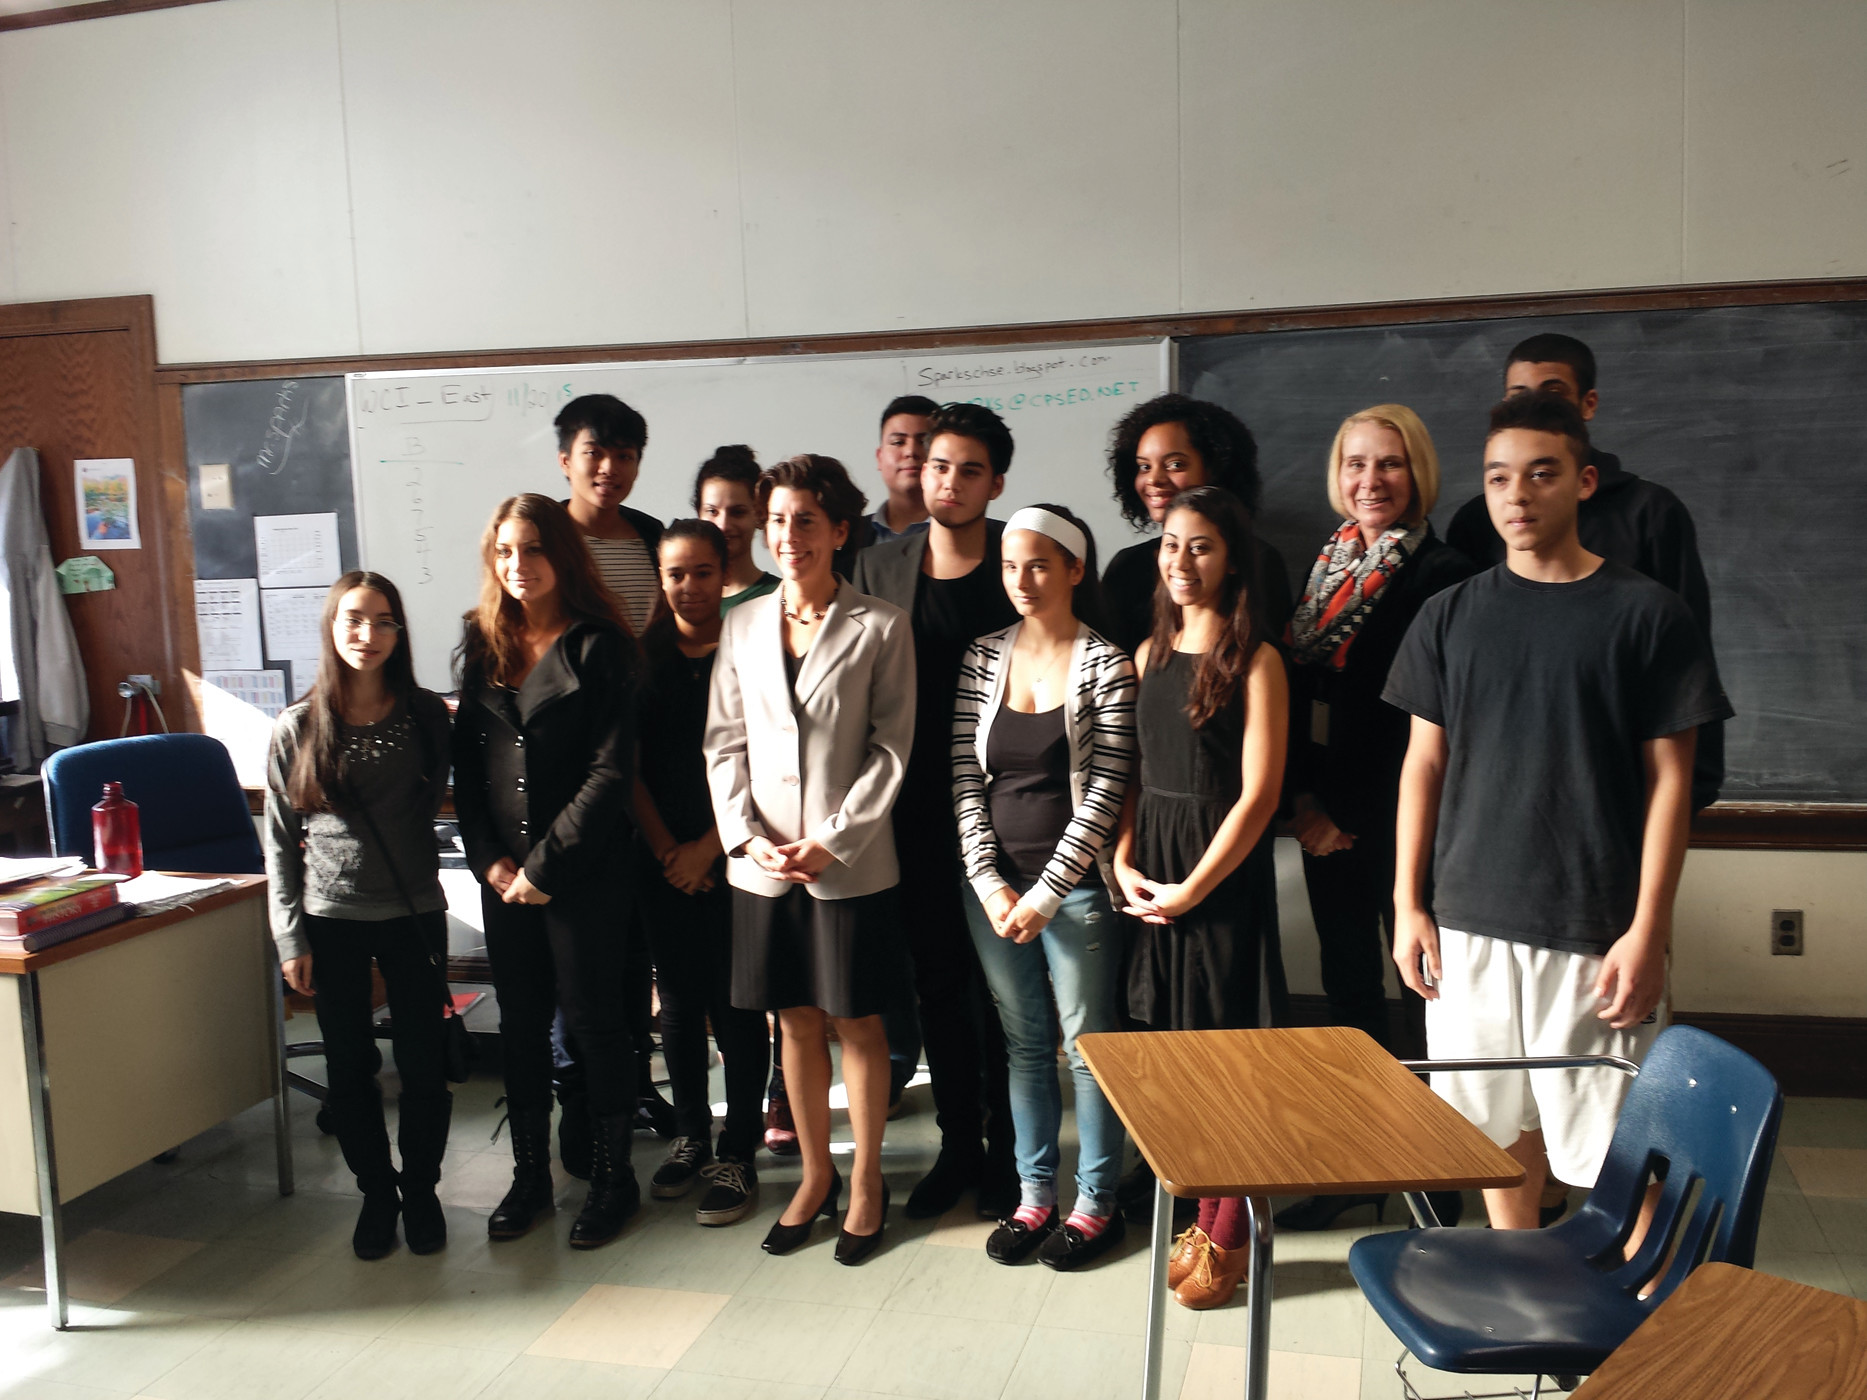 VISIT WITH THE GOVERNOR: Gov. Gina Raimondo posed with the entire class at the end of her visit.